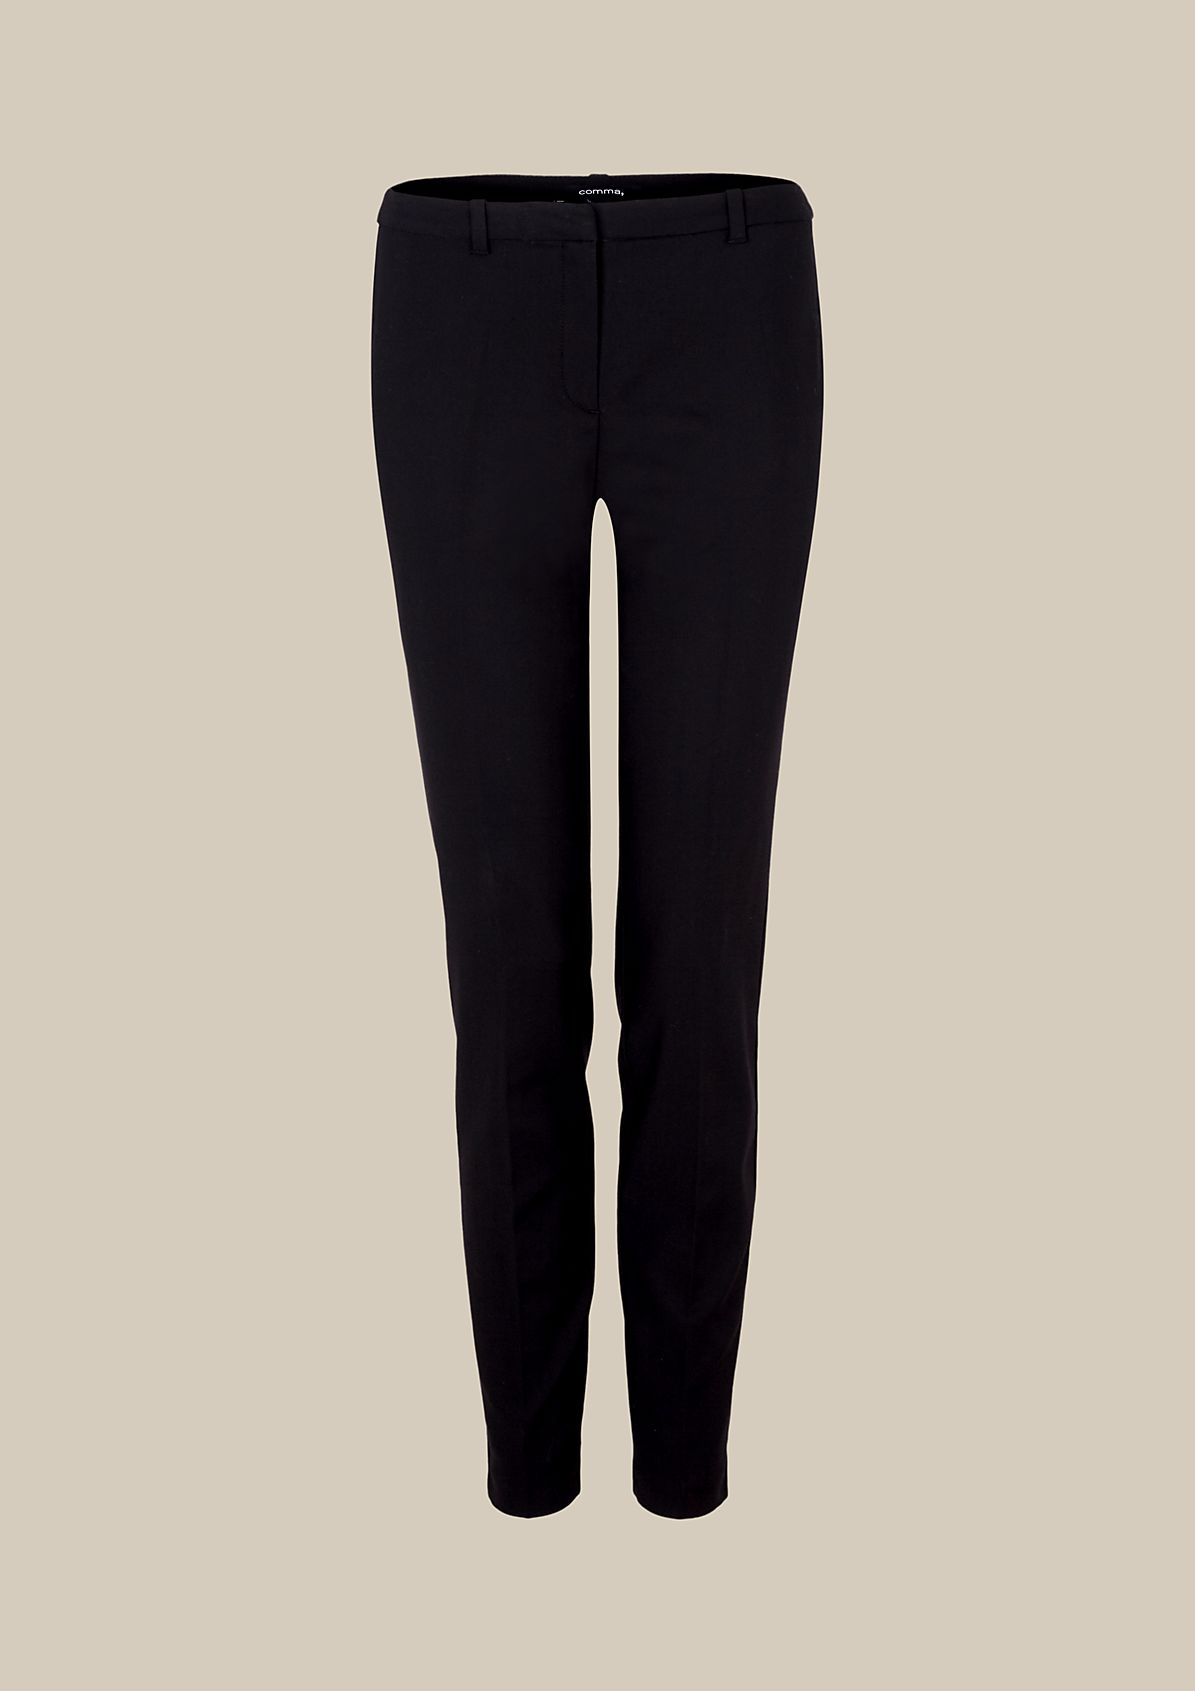 Elegant business trousers with details in a sophisticated finish from s.Oliver